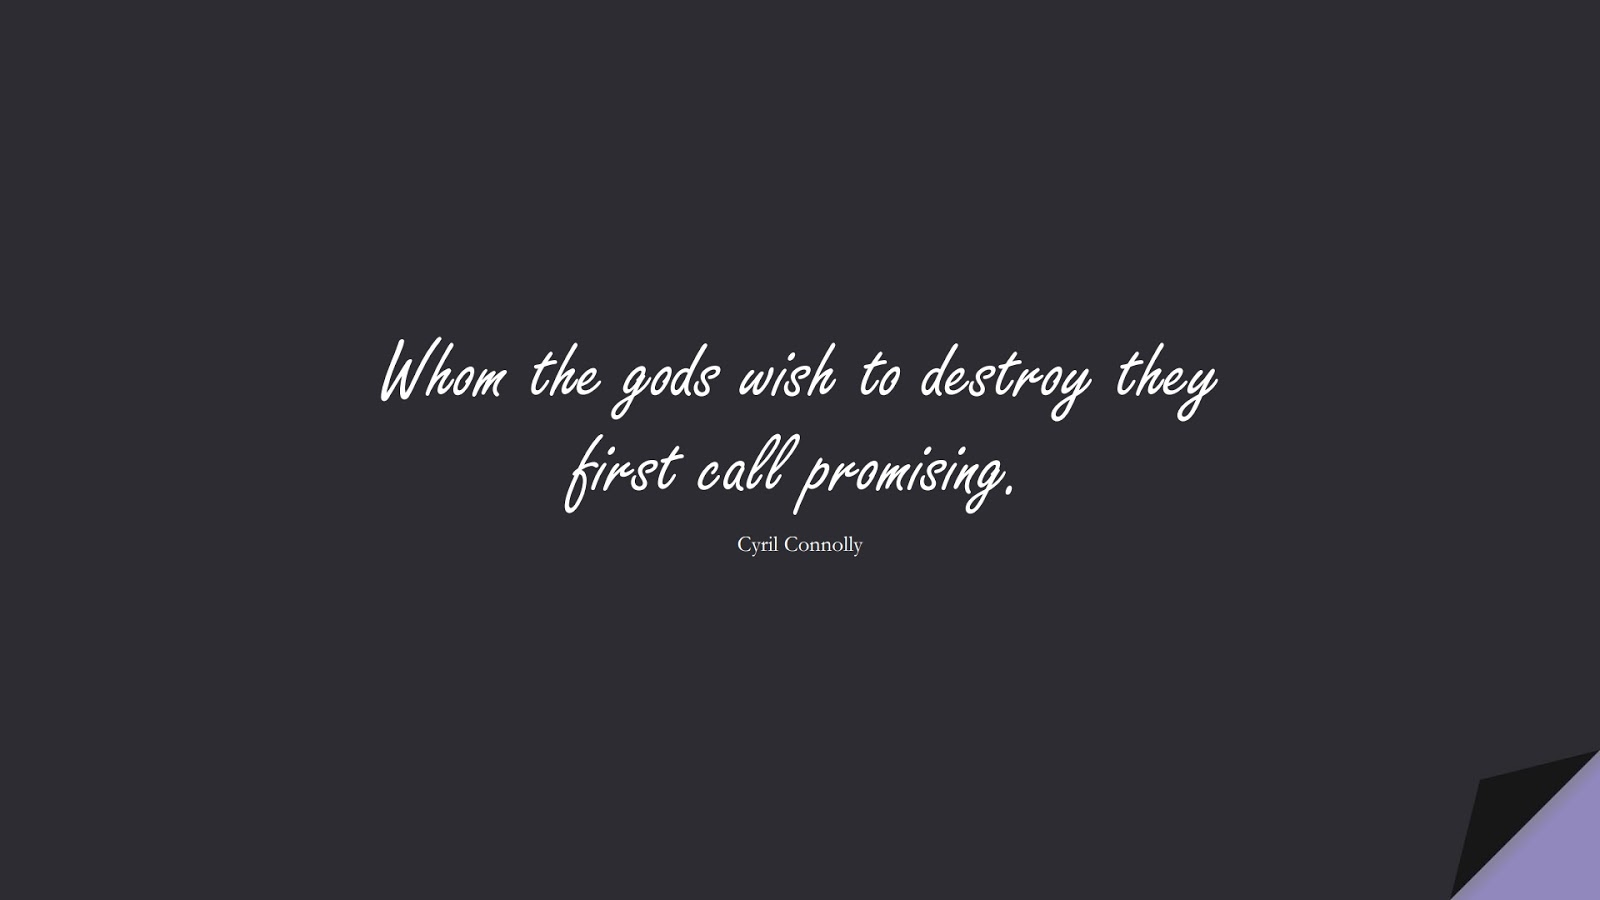 Whom the gods wish to destroy they first call promising. (Cyril Connolly);  #CharacterQuotes